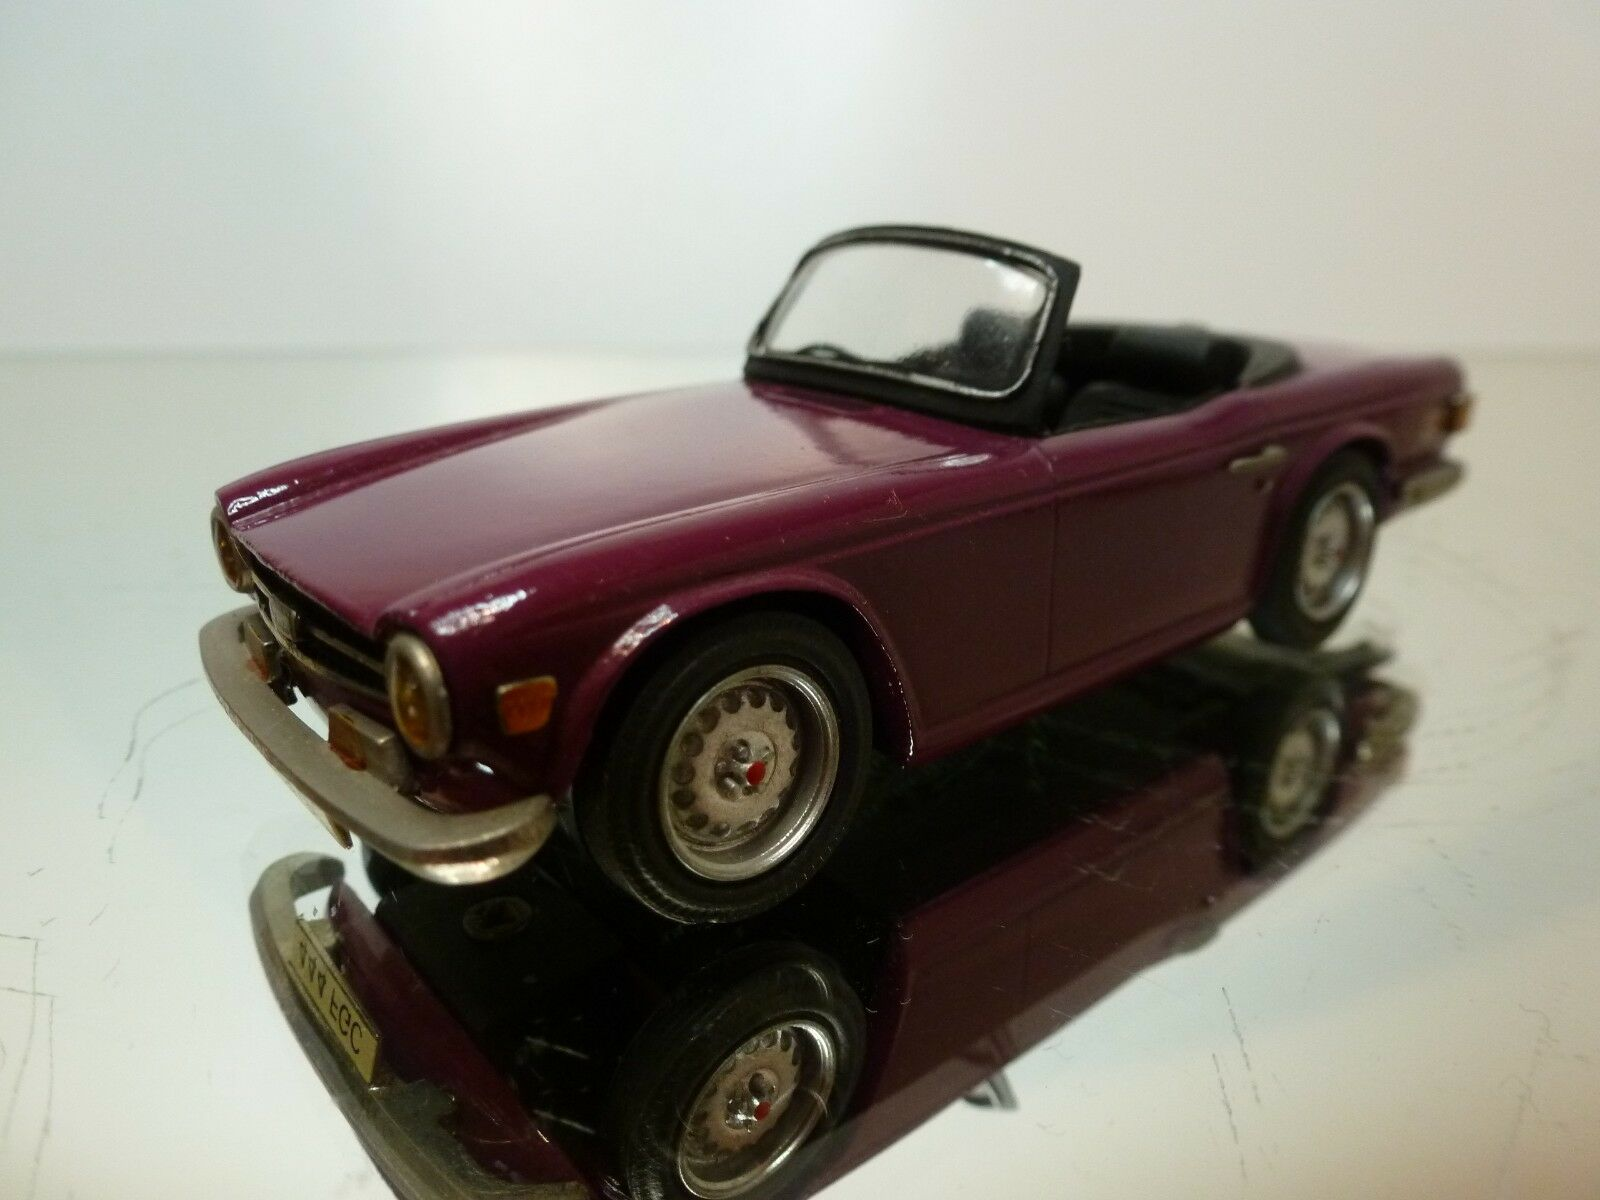 APOLLO MODELS TRIUMPH TR6 - PLUM viola 1 43 - VERY GOOD CONDITION - 2